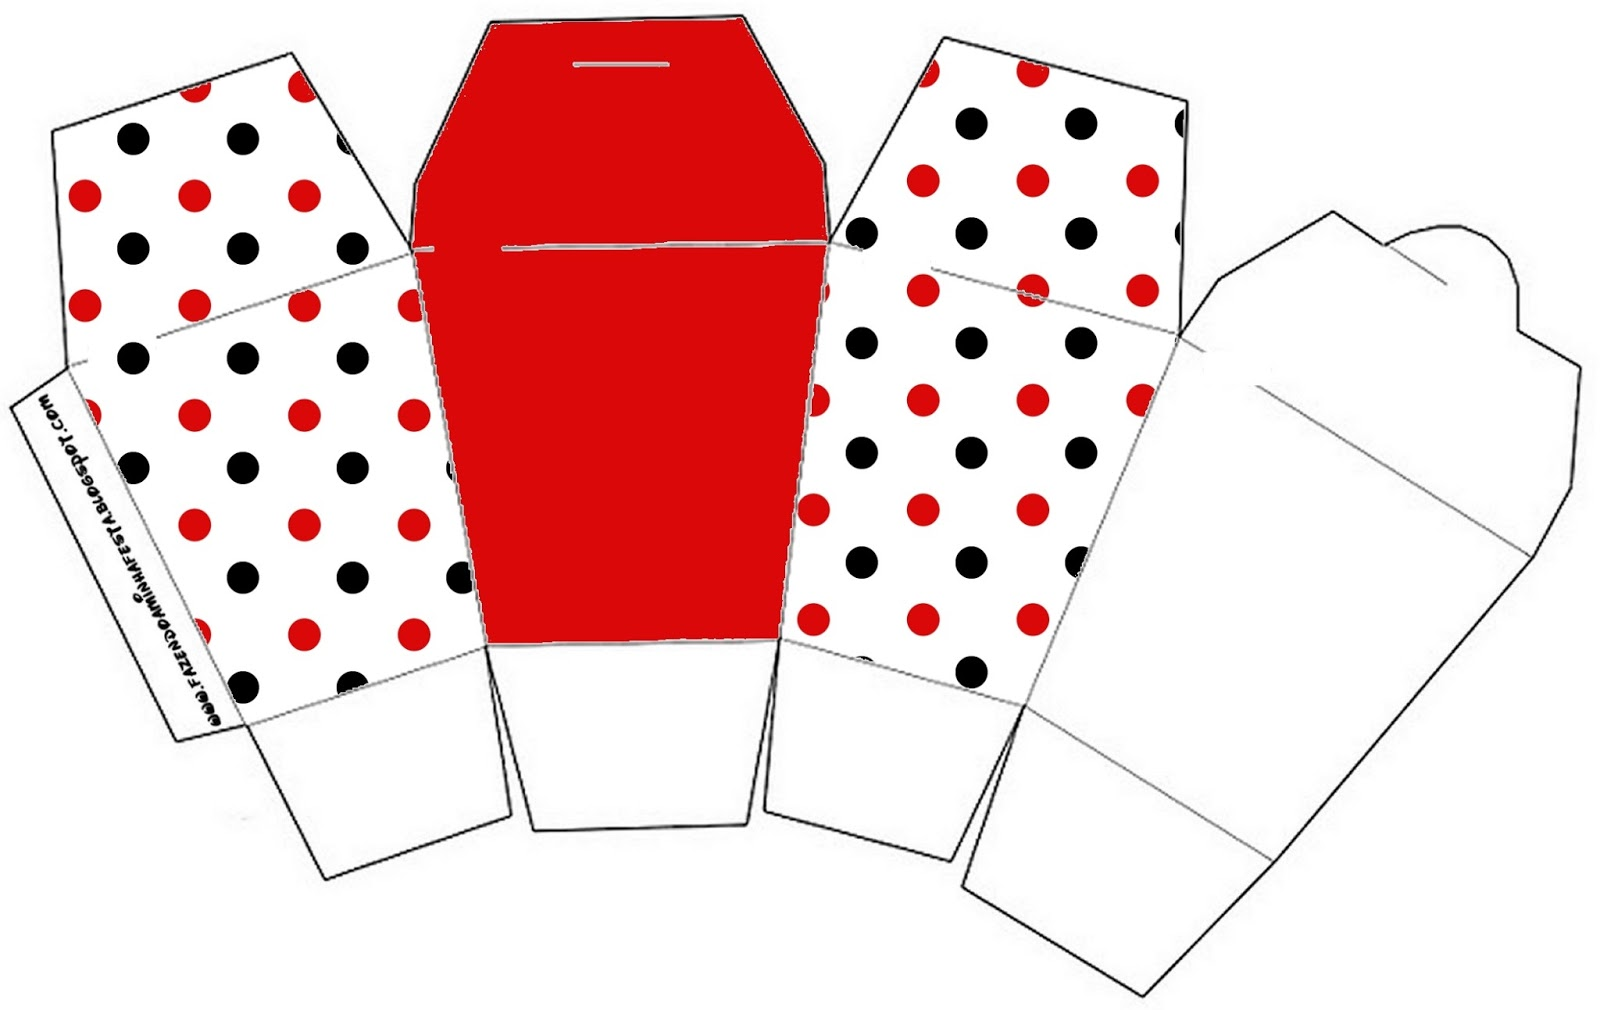 photograph regarding Dots and Boxes Printable known as Crimson Polka Dots within Black and White: Totally free Printable Bins